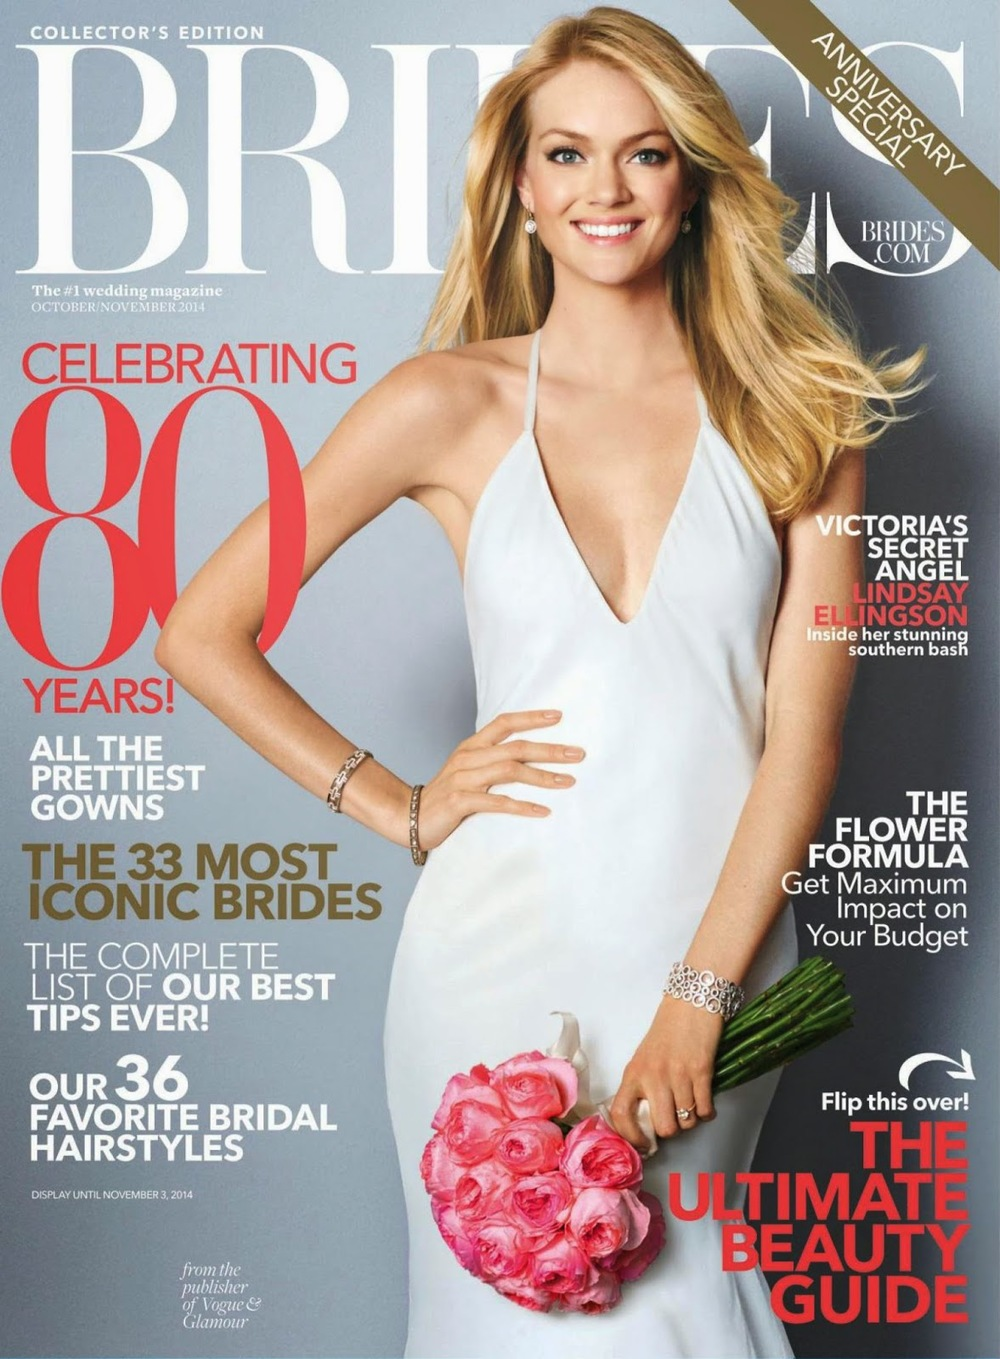 ECBM Brides Oct Nov 2014 Cover